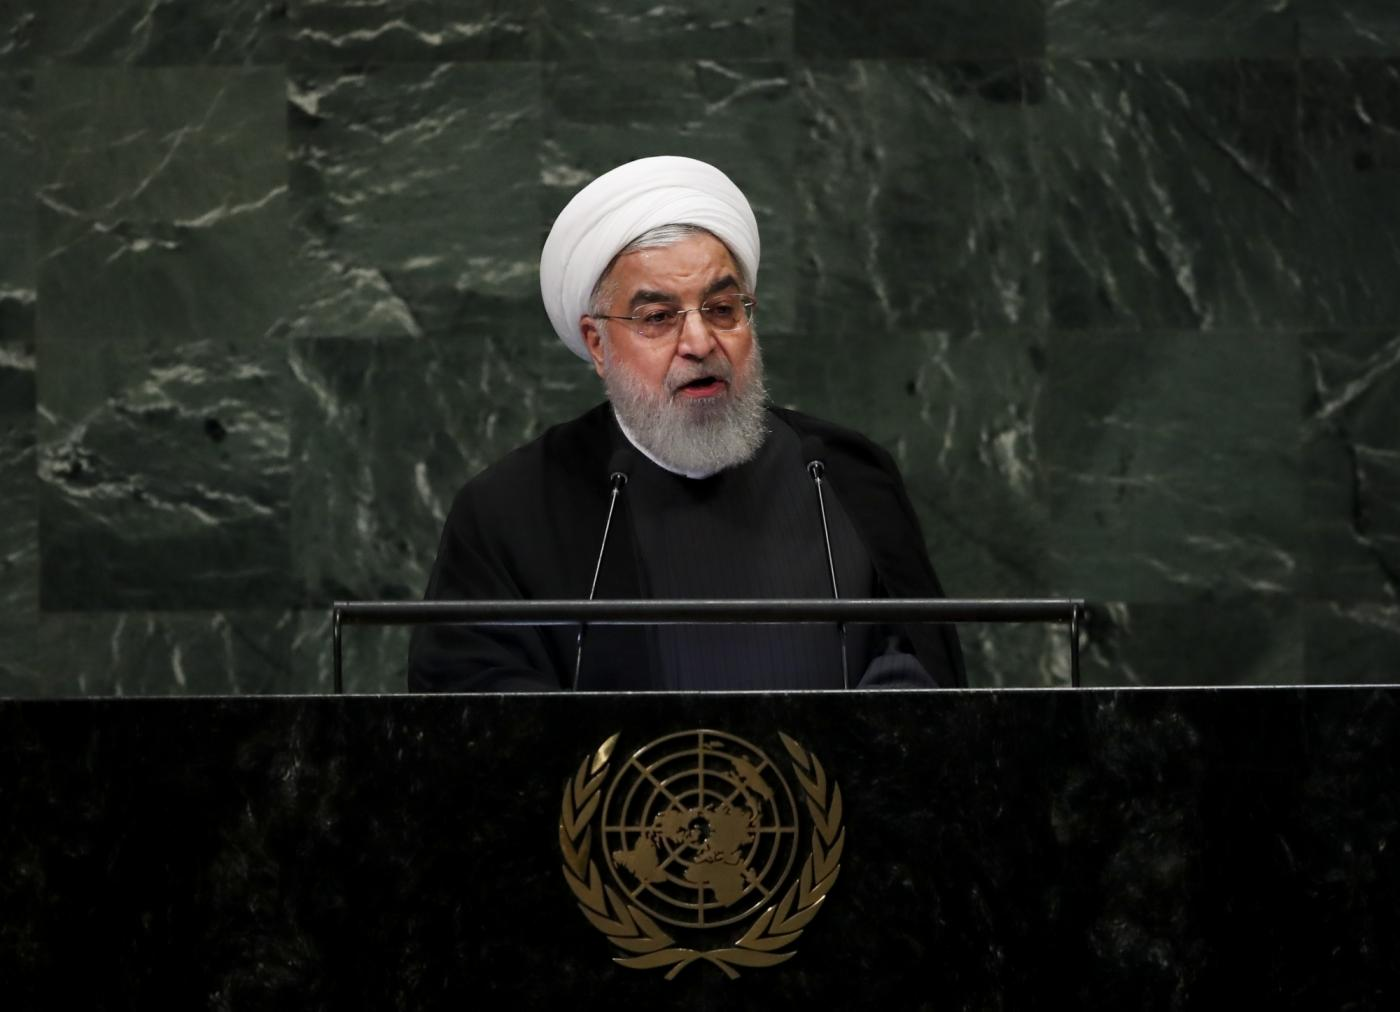 UNITED NATIONS, Sept. 25, 2018 (Xinhua) -- Iranian President Hassan Rouhani addresses the General Debate of the 73rd session of the United Nations General Assembly at the UN headquarters in New York, on Sept. 25, 2018. (Xinhua/Wang Ying/IANS) by .